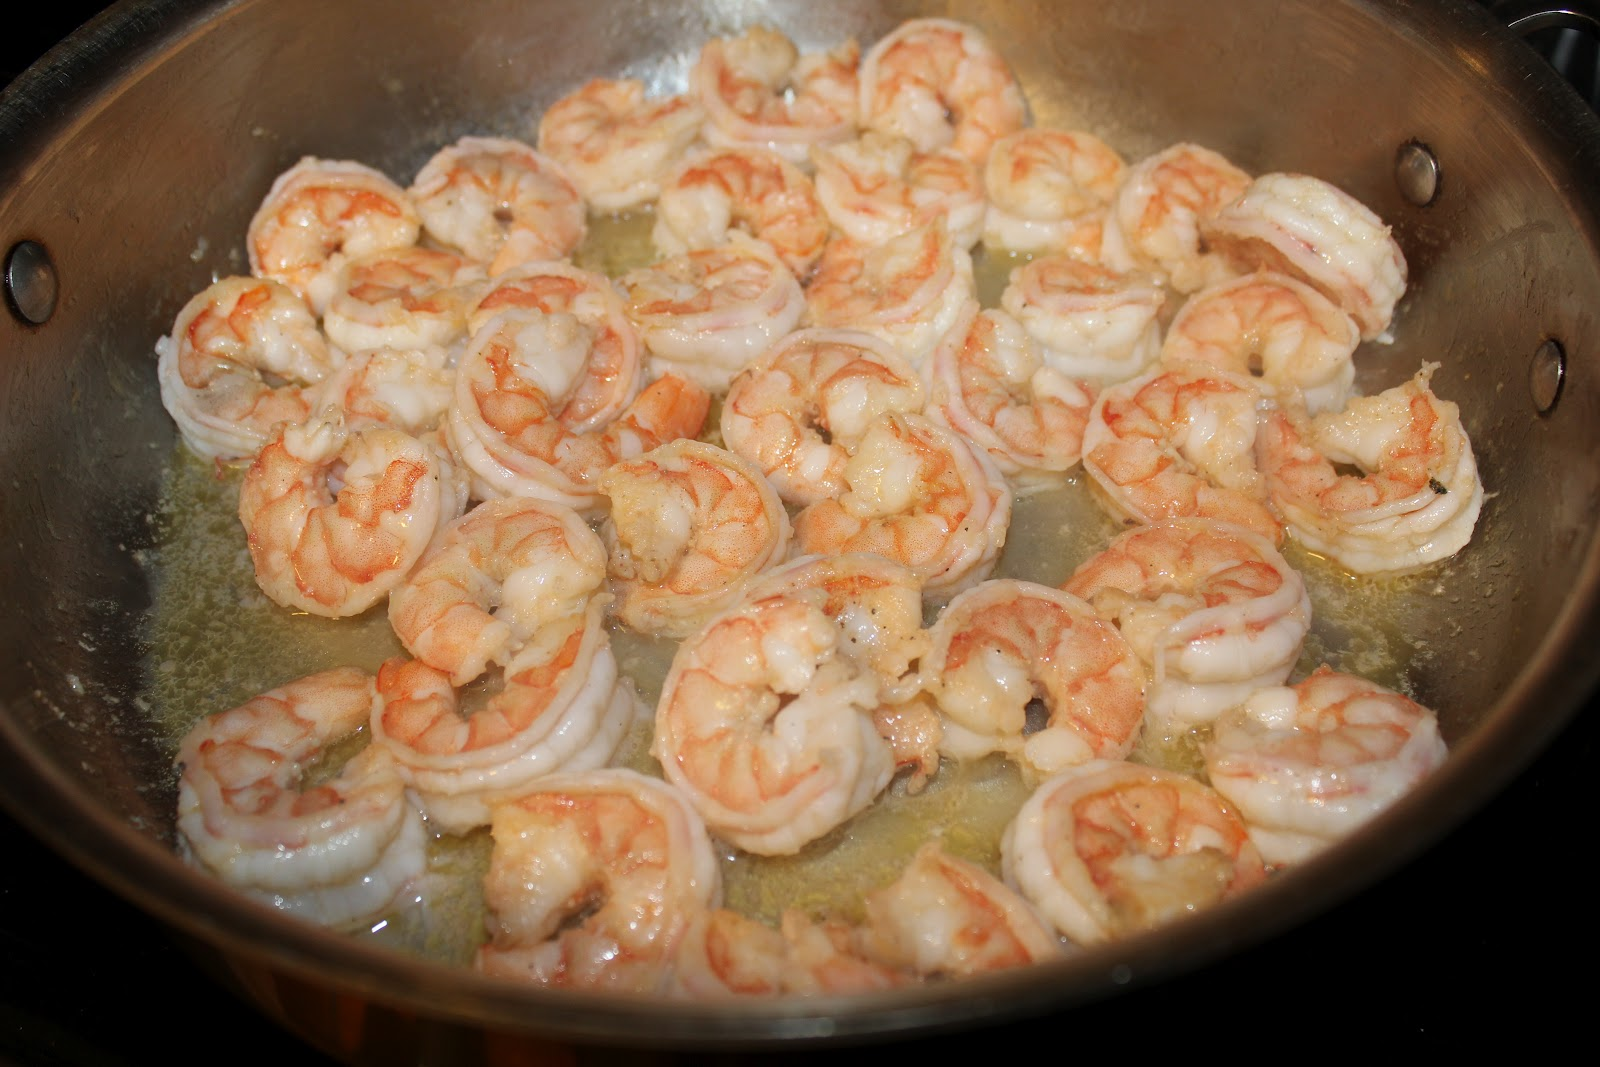 Opaque color shrimp once shrimp are cooked - In The Same Skillet Add More Butter And Olive Oil I Still Had Some Shrimp Juice In The Skillet So I Boiled It Down A Bit Before Adding The Butter And